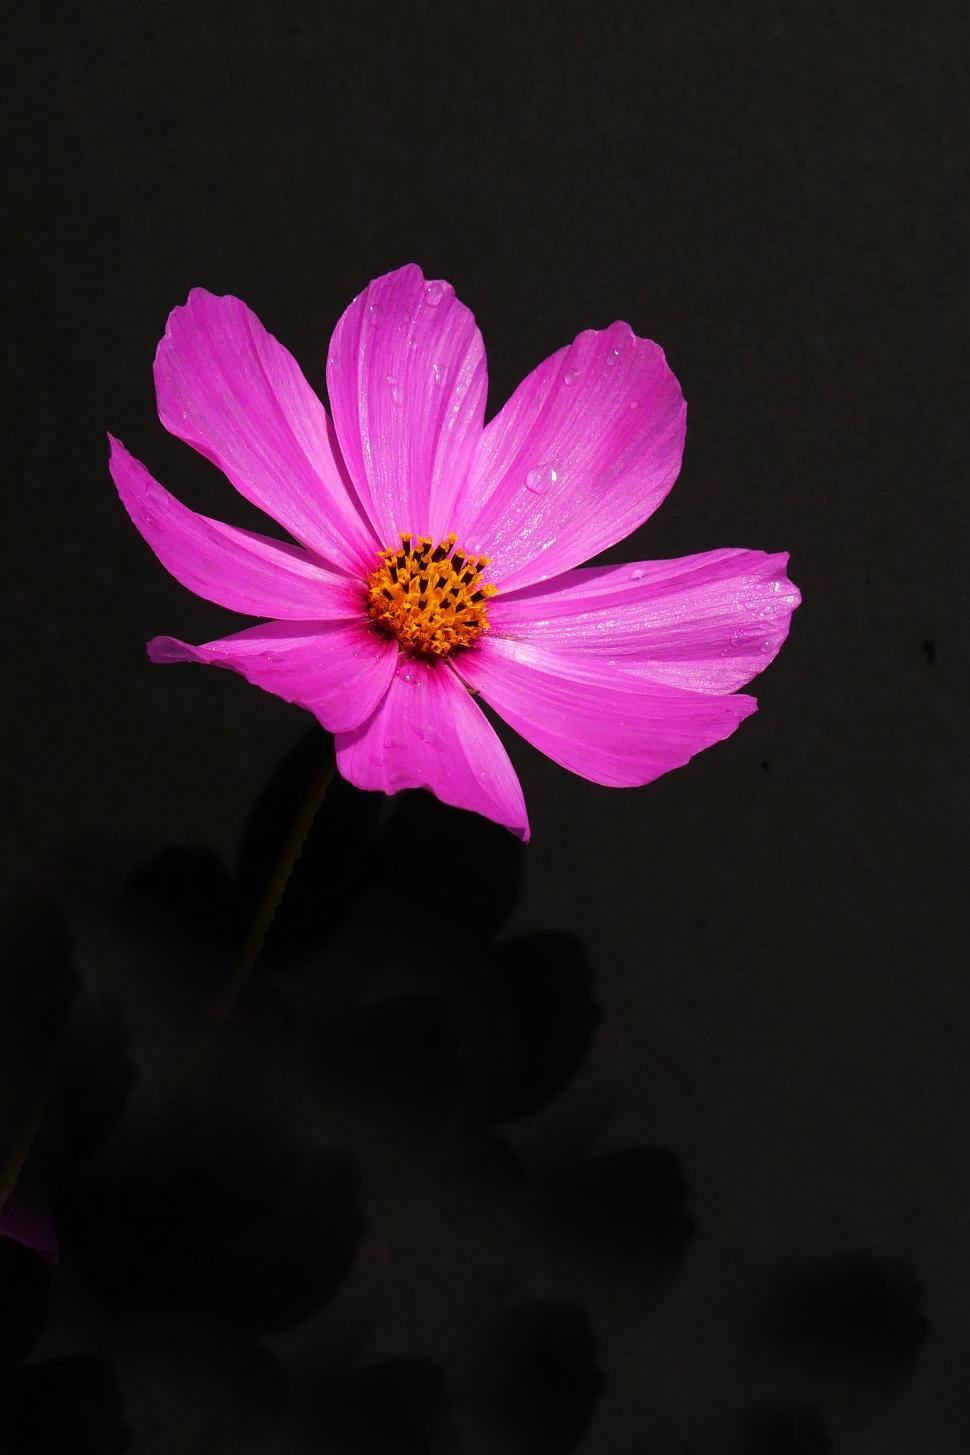 Download Free Stock Photo of Wet Cosmos Flower on Black